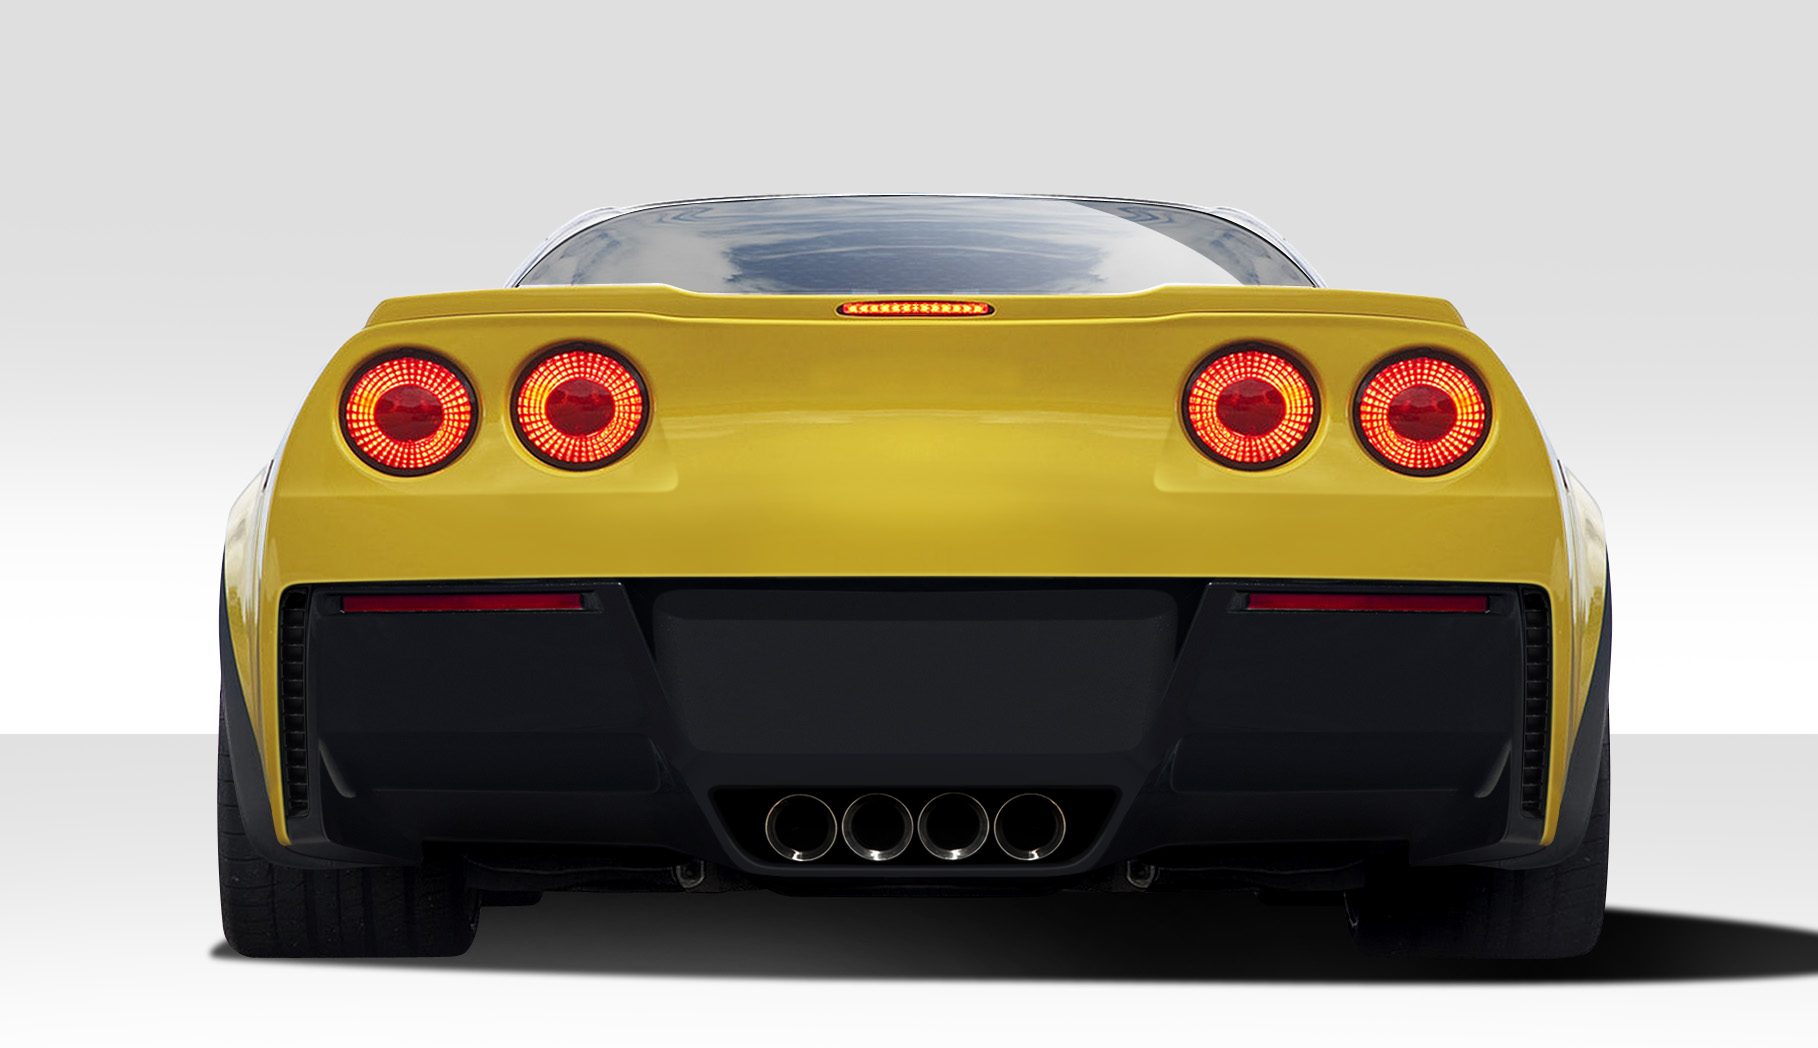 2005 2013 Chevrolet Corvette C6 Duraflex Stingray Z Rear